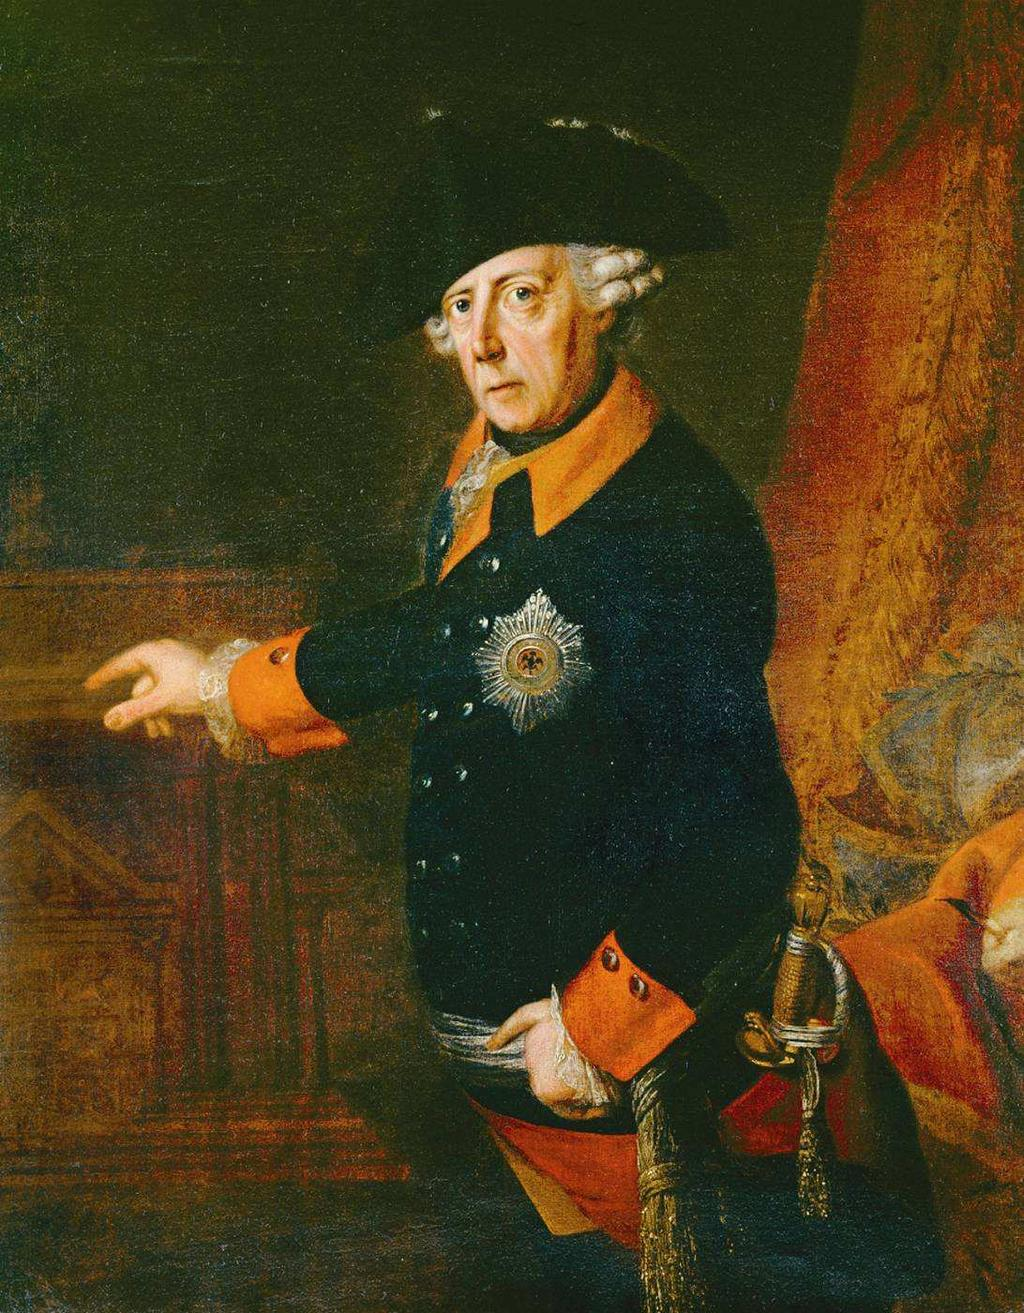 Frederick the Great of Prussia Promotion through merit work and education rather than birth would decide ruled Prussia Religious toleration for